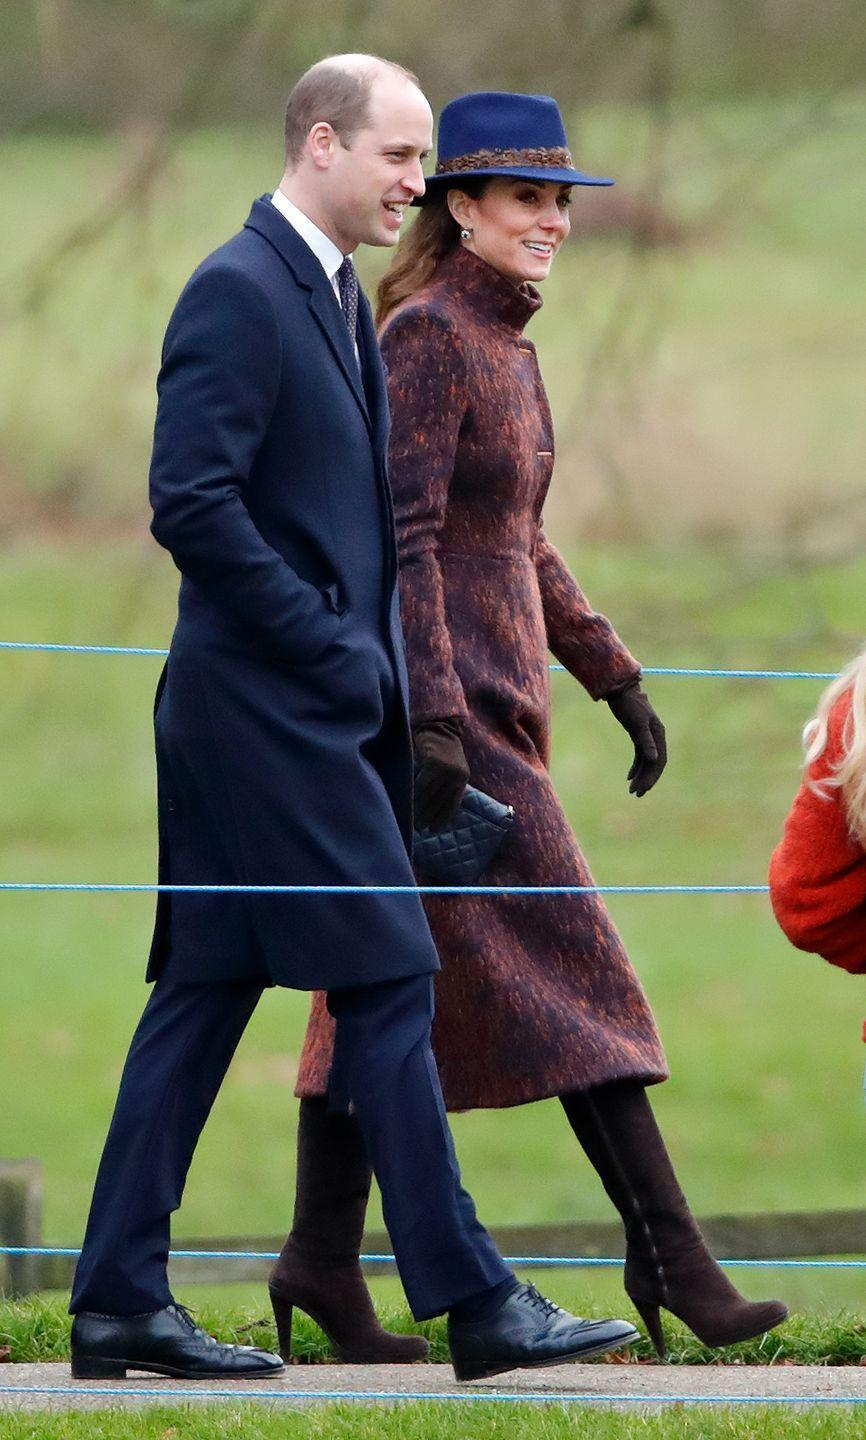 """<p>The Duchess of Cambridge attend Sunday service at the Church of St. Mary Magdalene on the Sandringham estate. She wore a coat, <a href=""""https://www.stuartweitzman.com/home/"""" rel=""""nofollow noopener"""" target=""""_blank"""" data-ylk=""""slk:Stuart Weitzman"""" class=""""link rapid-noclick-resp"""">Stuart Weitzman</a> boots, Jaeger bag, and a fedora by Hicks & Brown.</p>"""